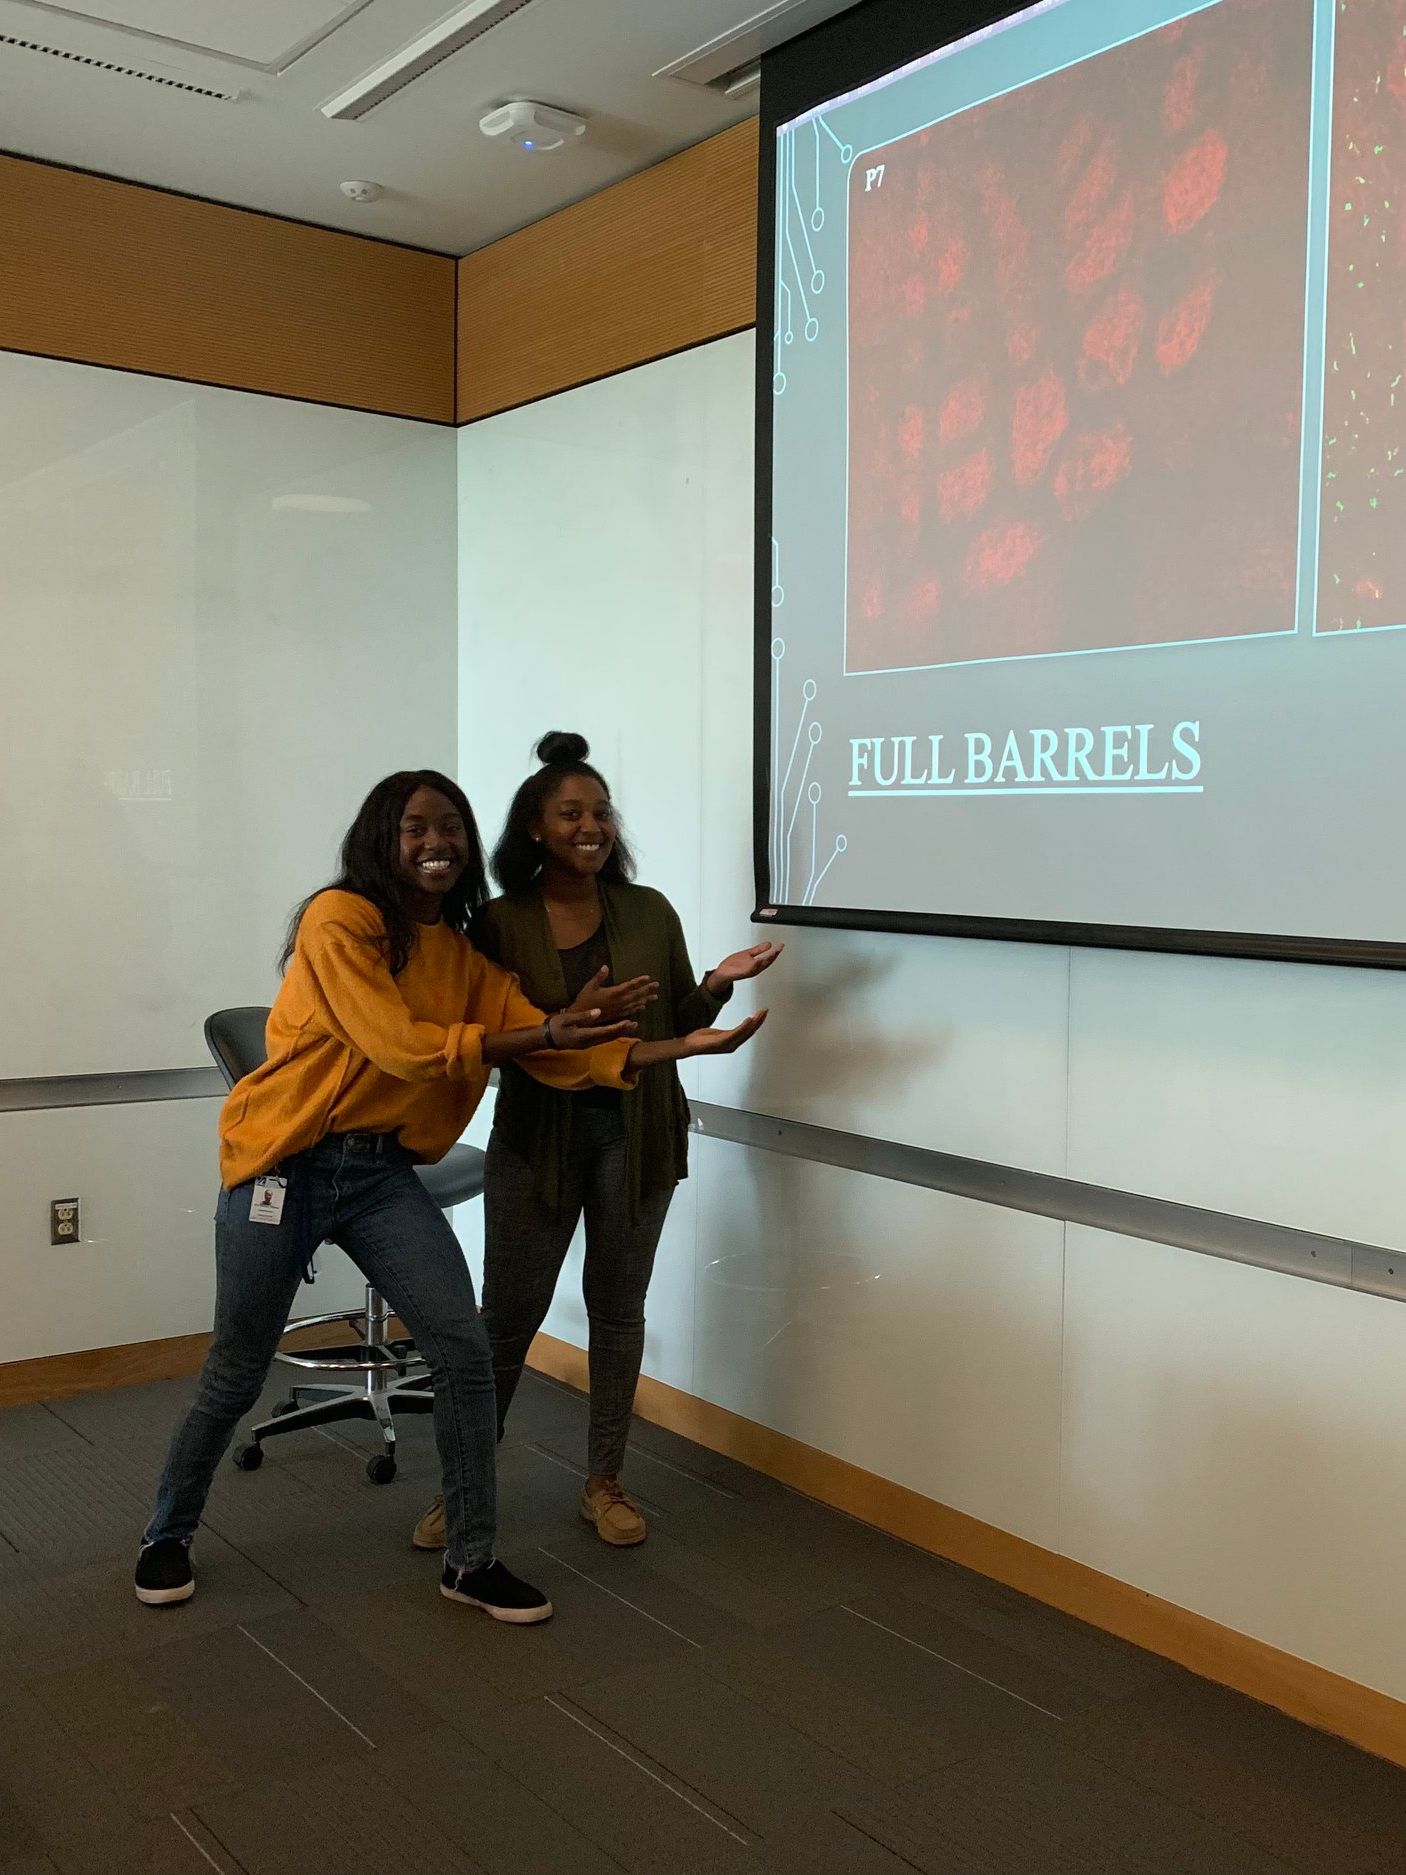 Interns present their data to the lab! - 2019 summer undergraduate interns Tete Brenda Thomas and Meggan Mwangi spent 8-10 weeks in the Schafer laboratory working on microglia-related projects and presented their findings on July 25th.